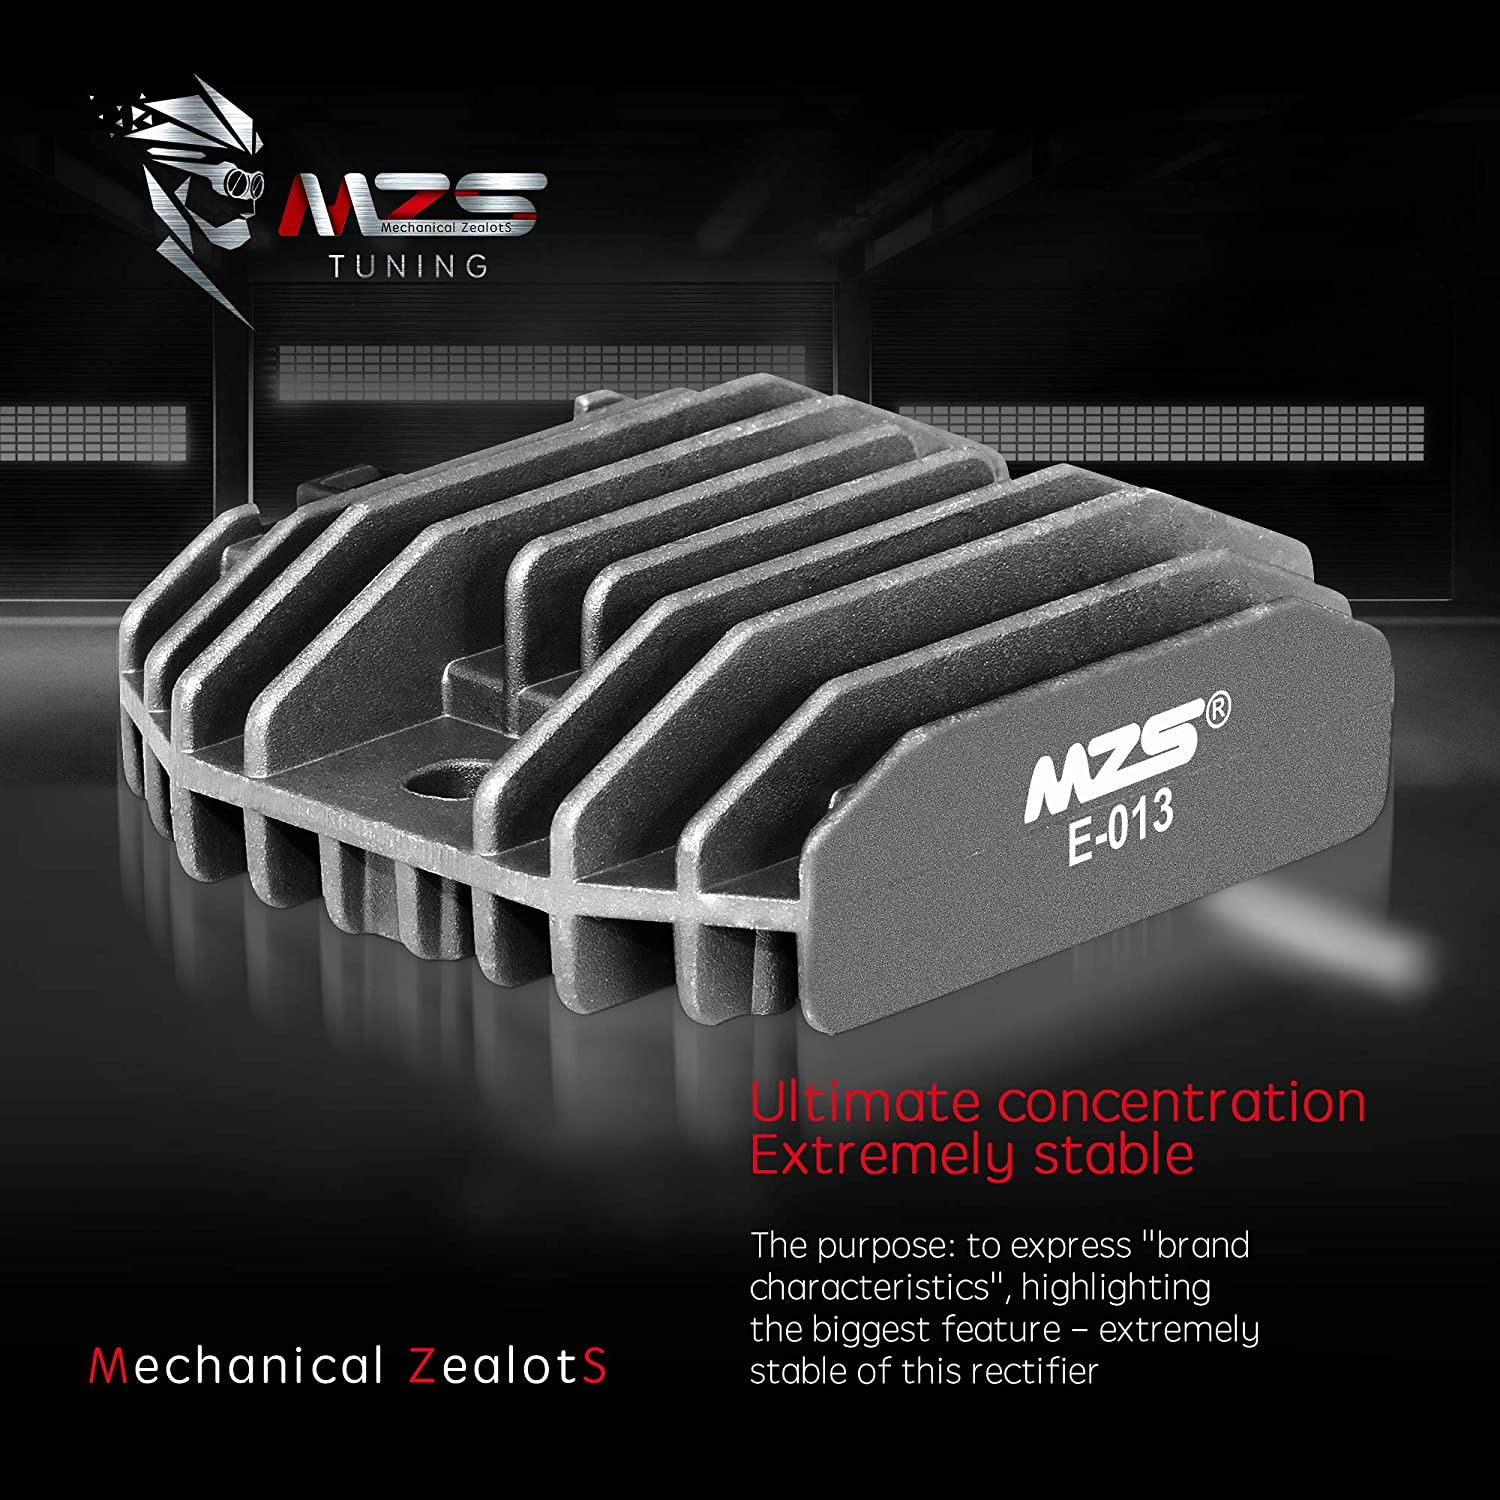 Mzs Voltage Regulator Rectifier For Yamaha R1 98 01 R6 And Circuit Motorcycle Free Electronic 99 05 R6s Yzf600 Fz6 Fz6n Fz6s Fzr600 V Star Xvs400 Ds400 Xp500 T Max 500 Tdm